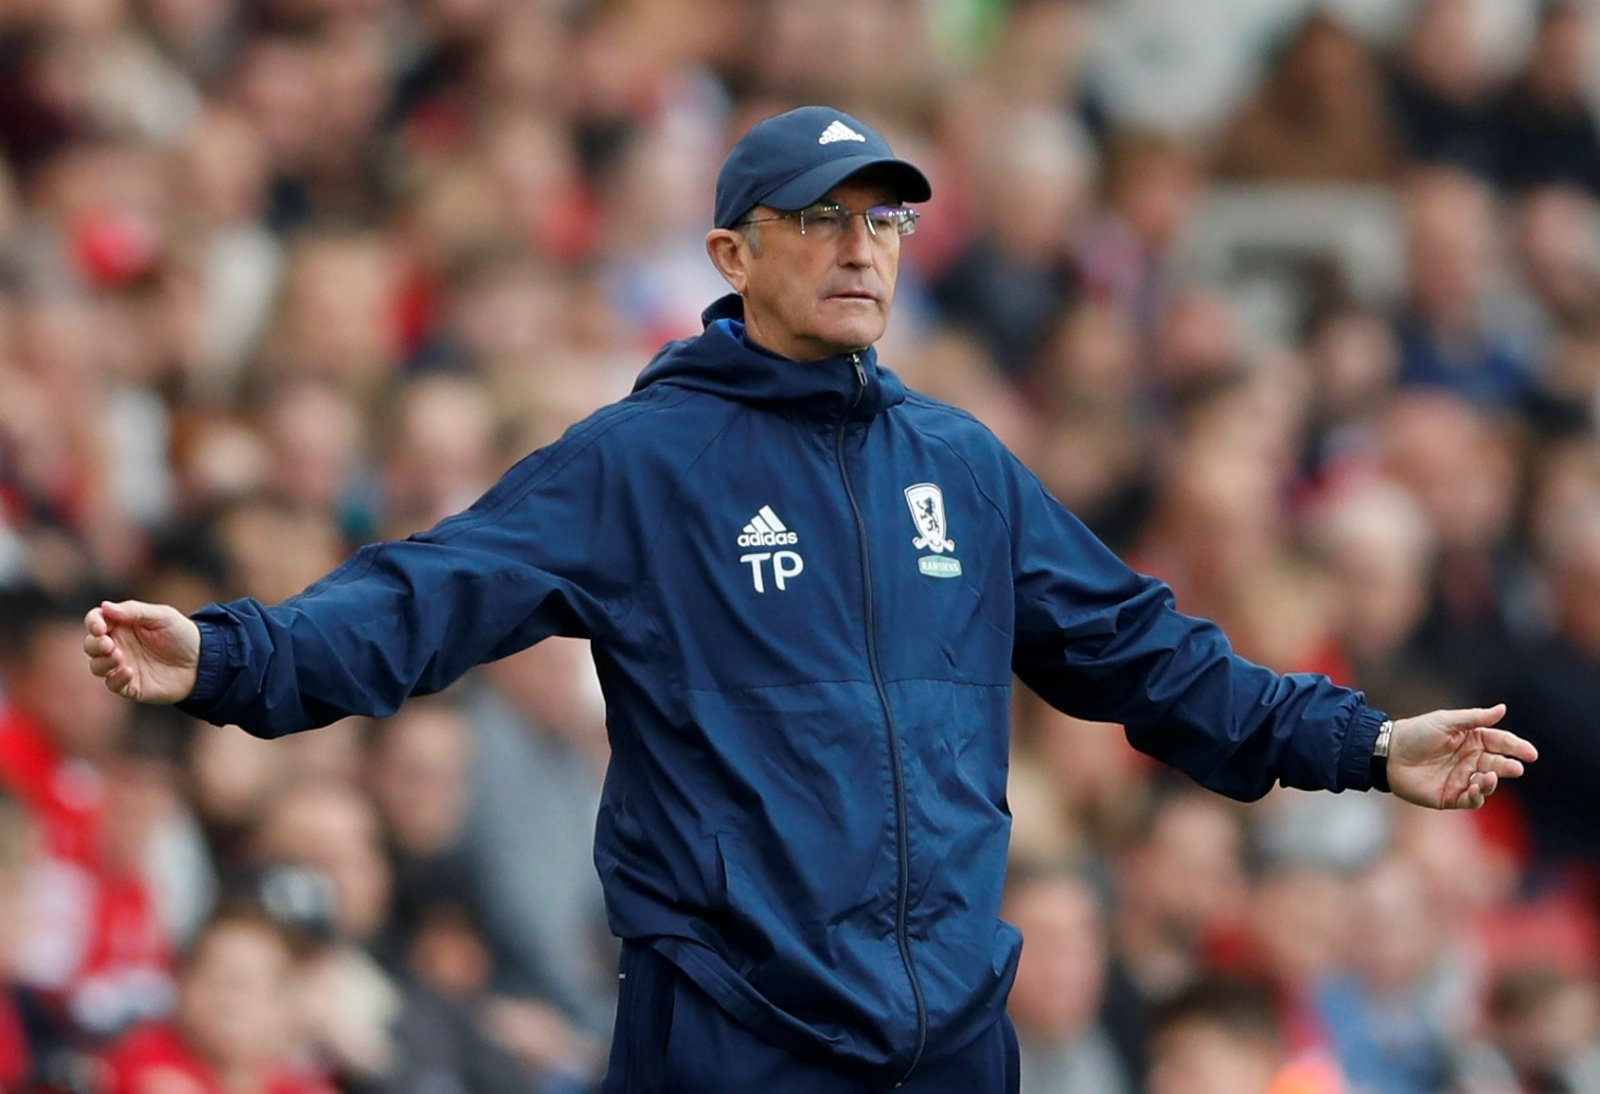 Pulis' transfer decisions and tactical changes have cost Middlesbrough